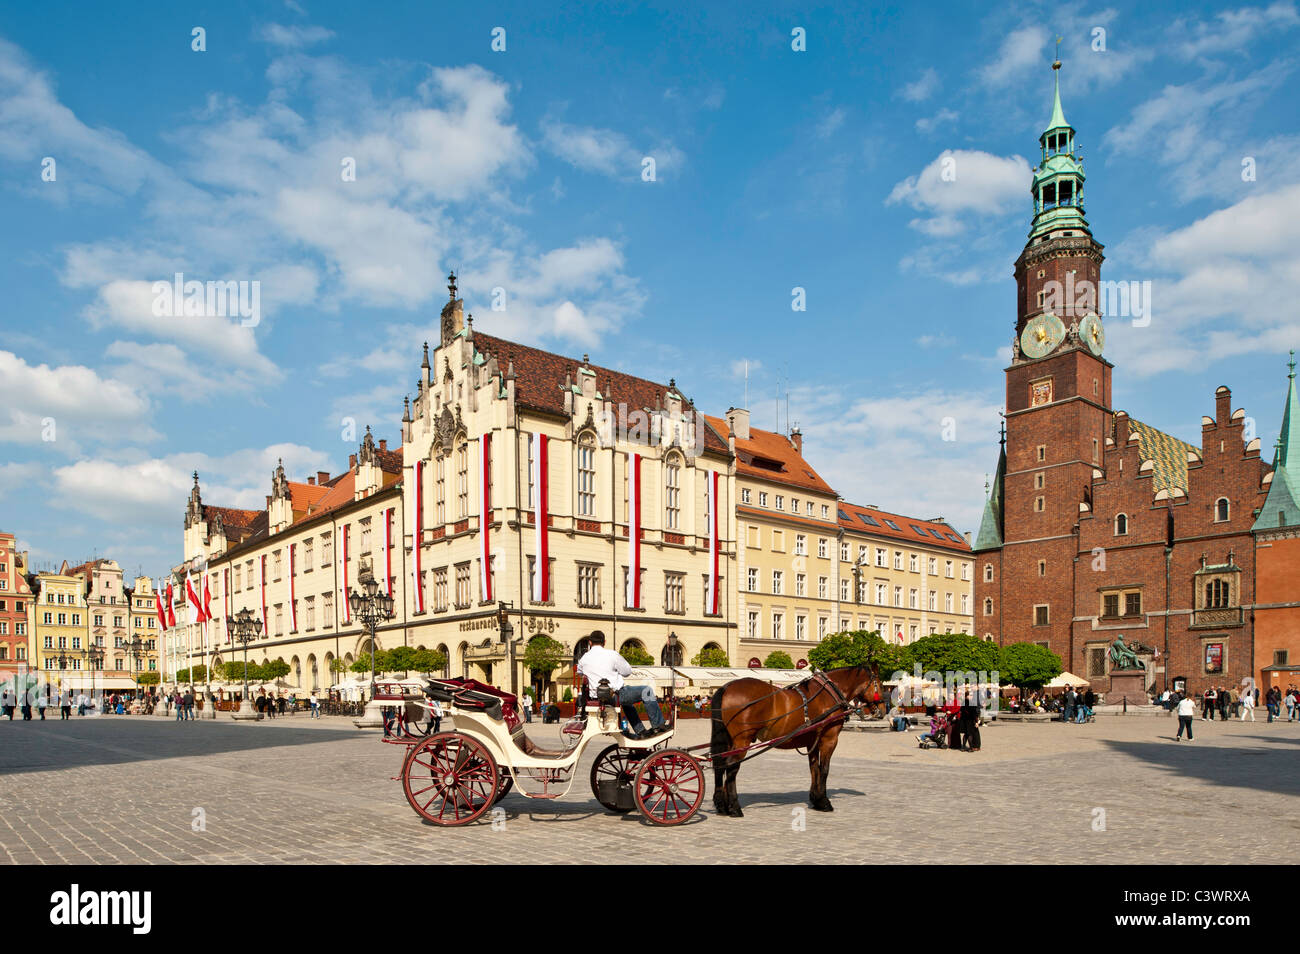 Market Square, Old Town, Wroclaw, Poland - Stock Image